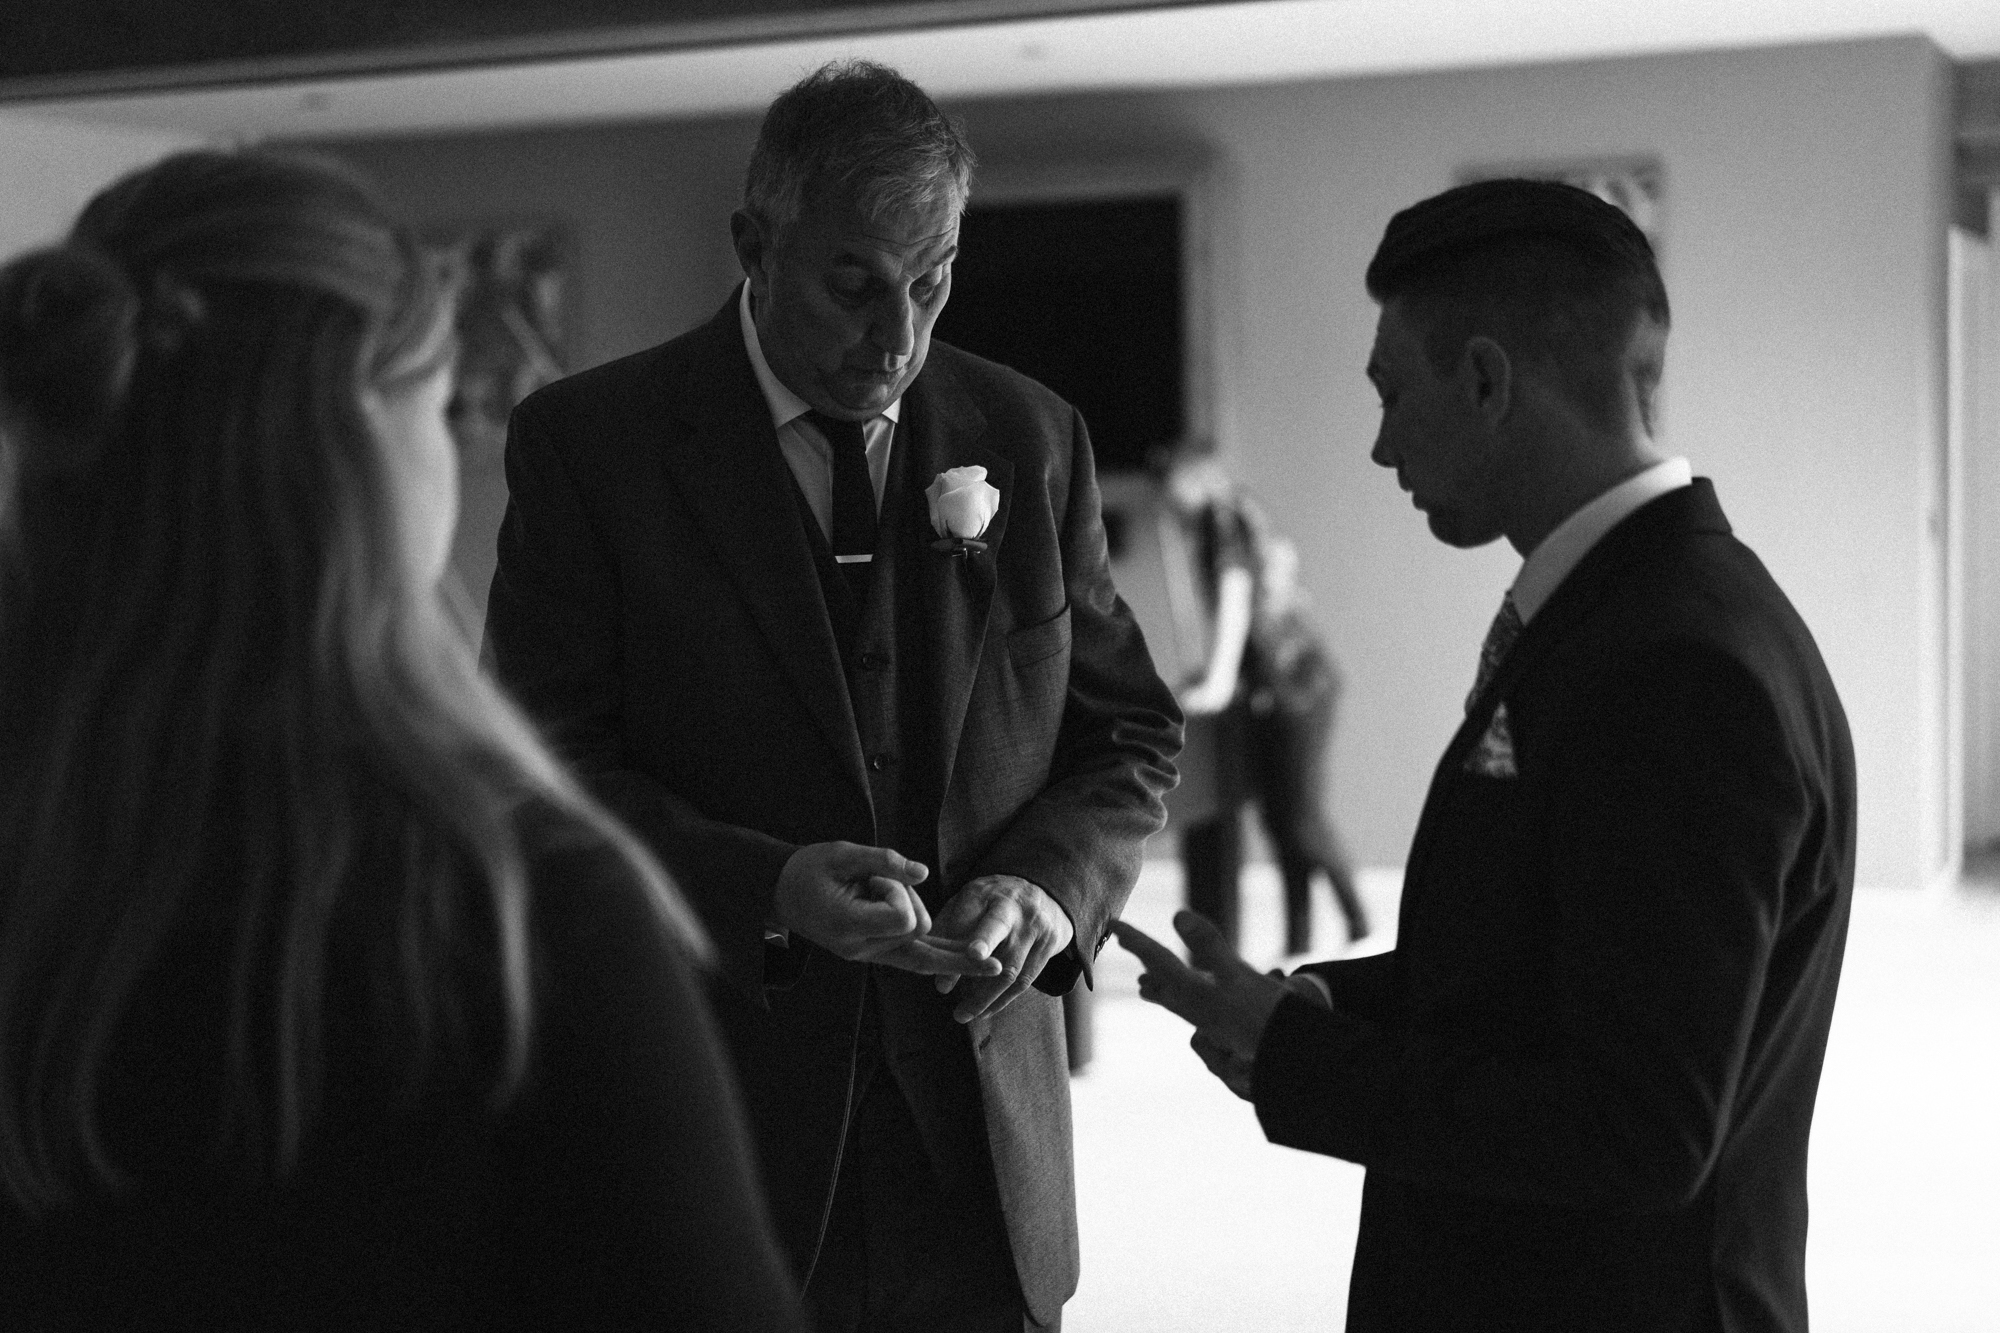 The groom and his father work out who needs button hole flowers